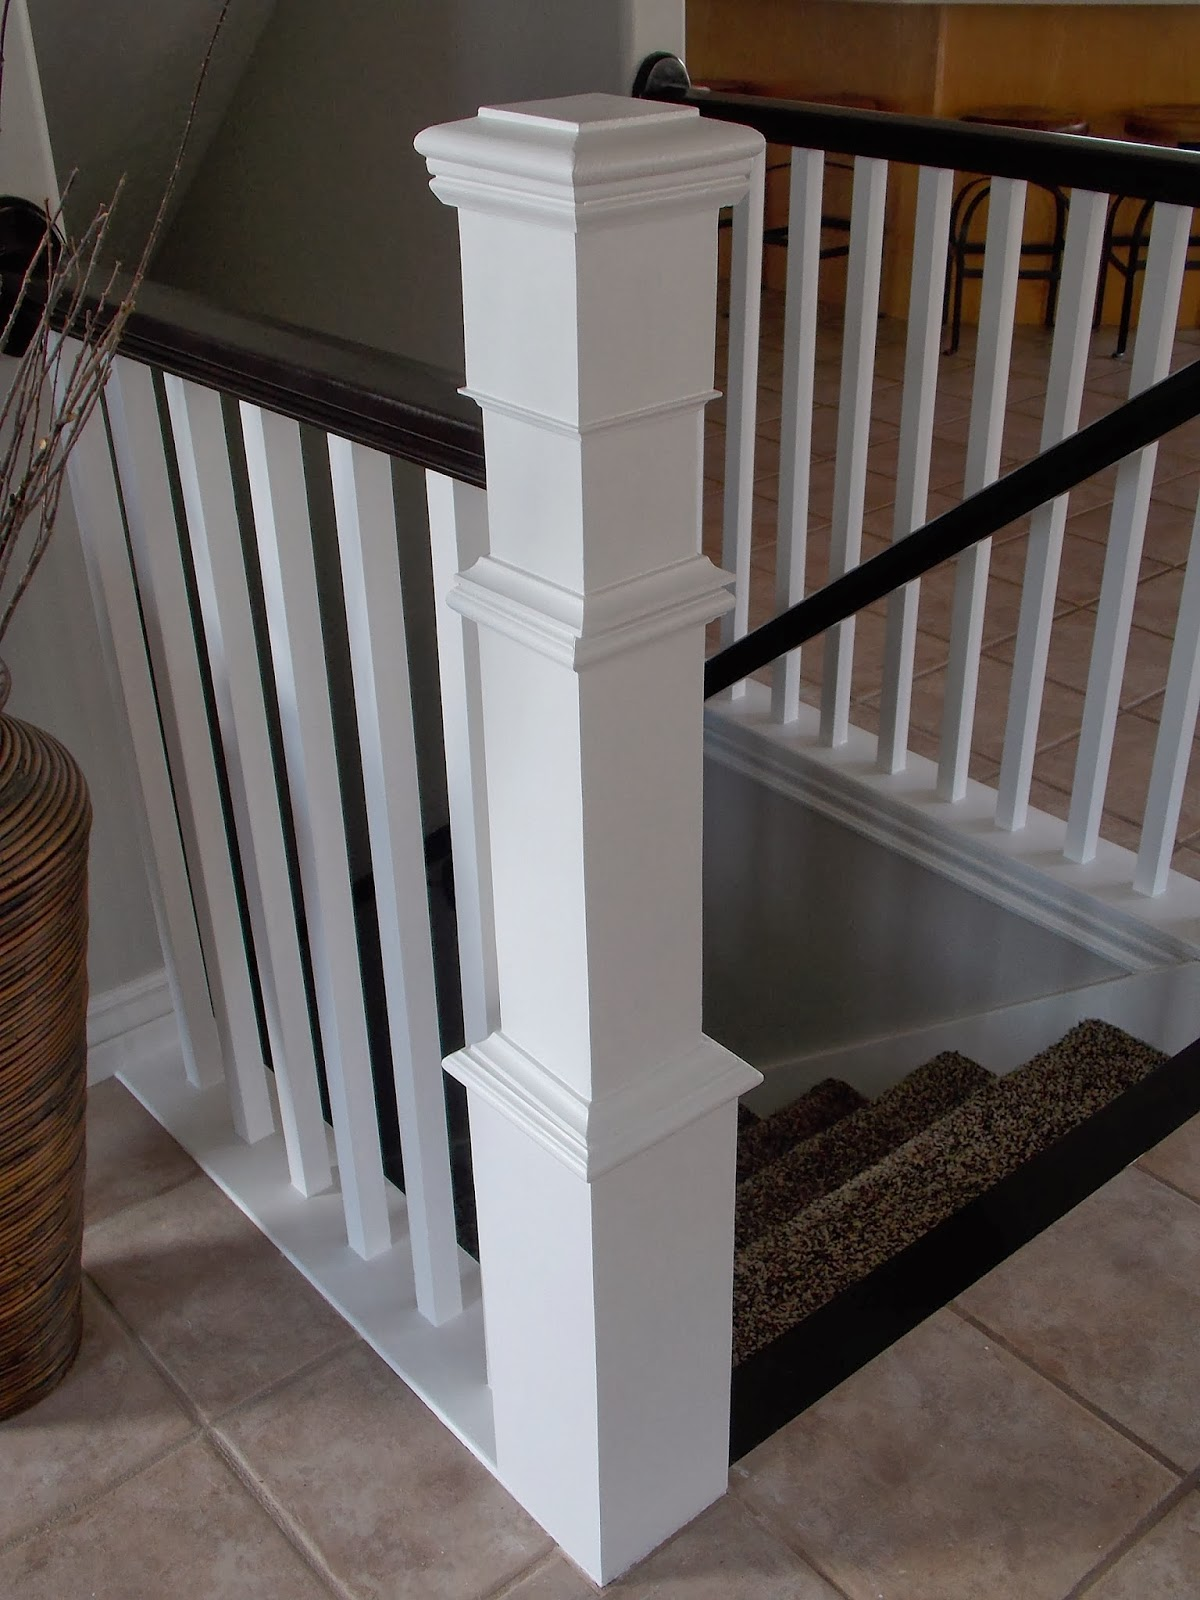 How To Build A Newel Post Around An Existing Banister Tda Designs Featured On